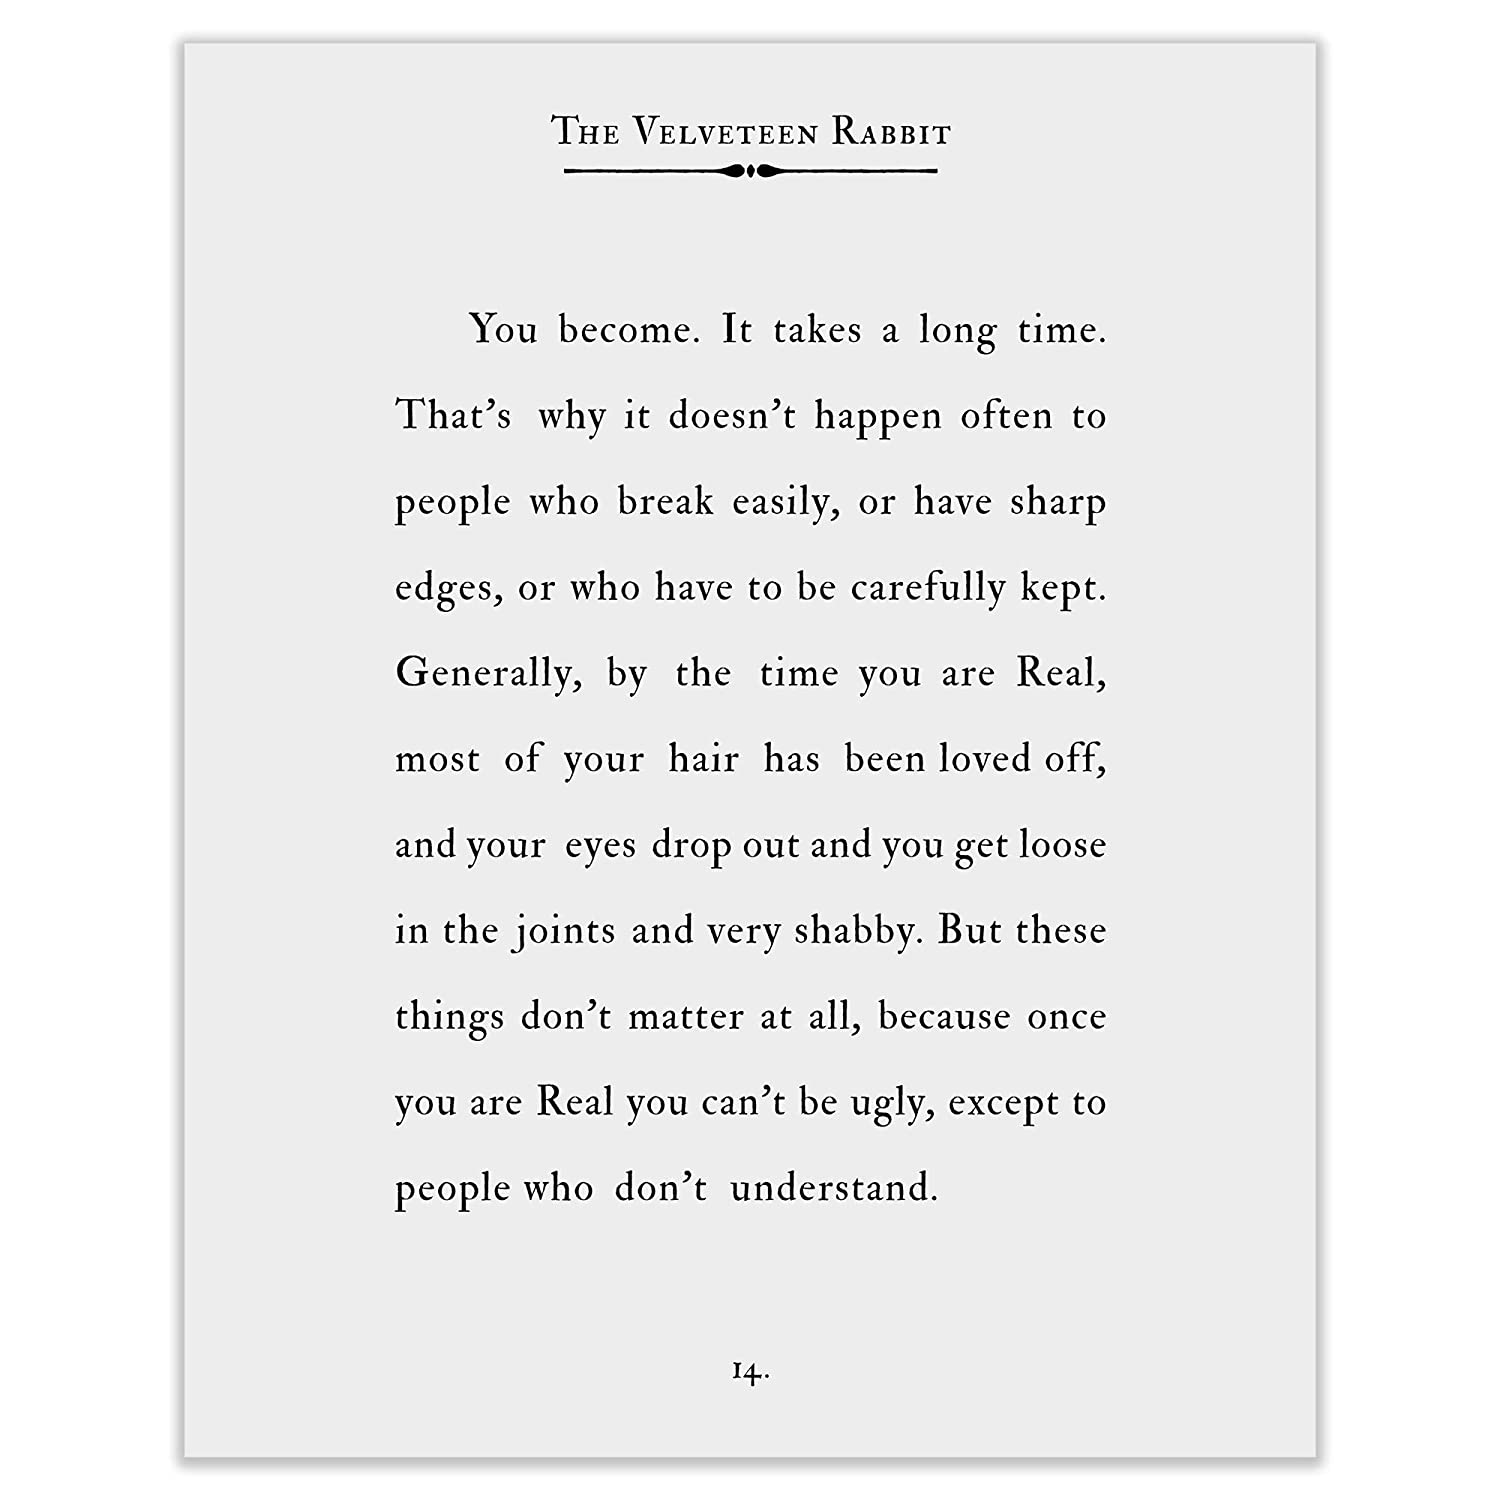 Amazon.com: Art of Observation Velveteen Rabbit Quote 8 x 10 ...